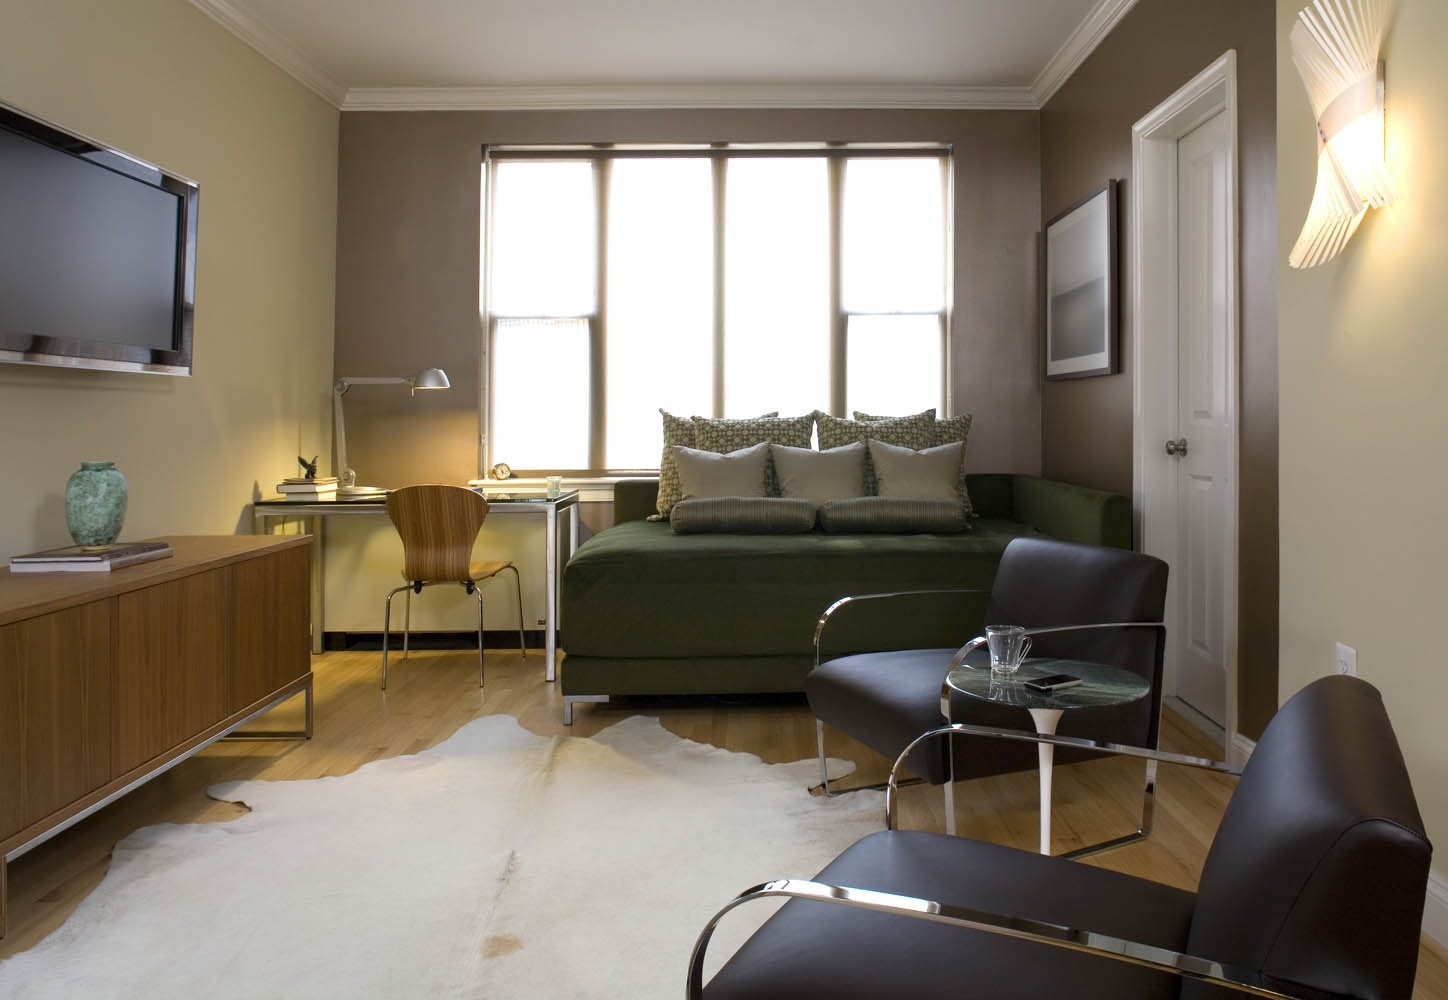 Apartment Studio Layout And Designs For Studio Apartments Studio in Best Layout For Wood Gardens Apartments Design Ideas